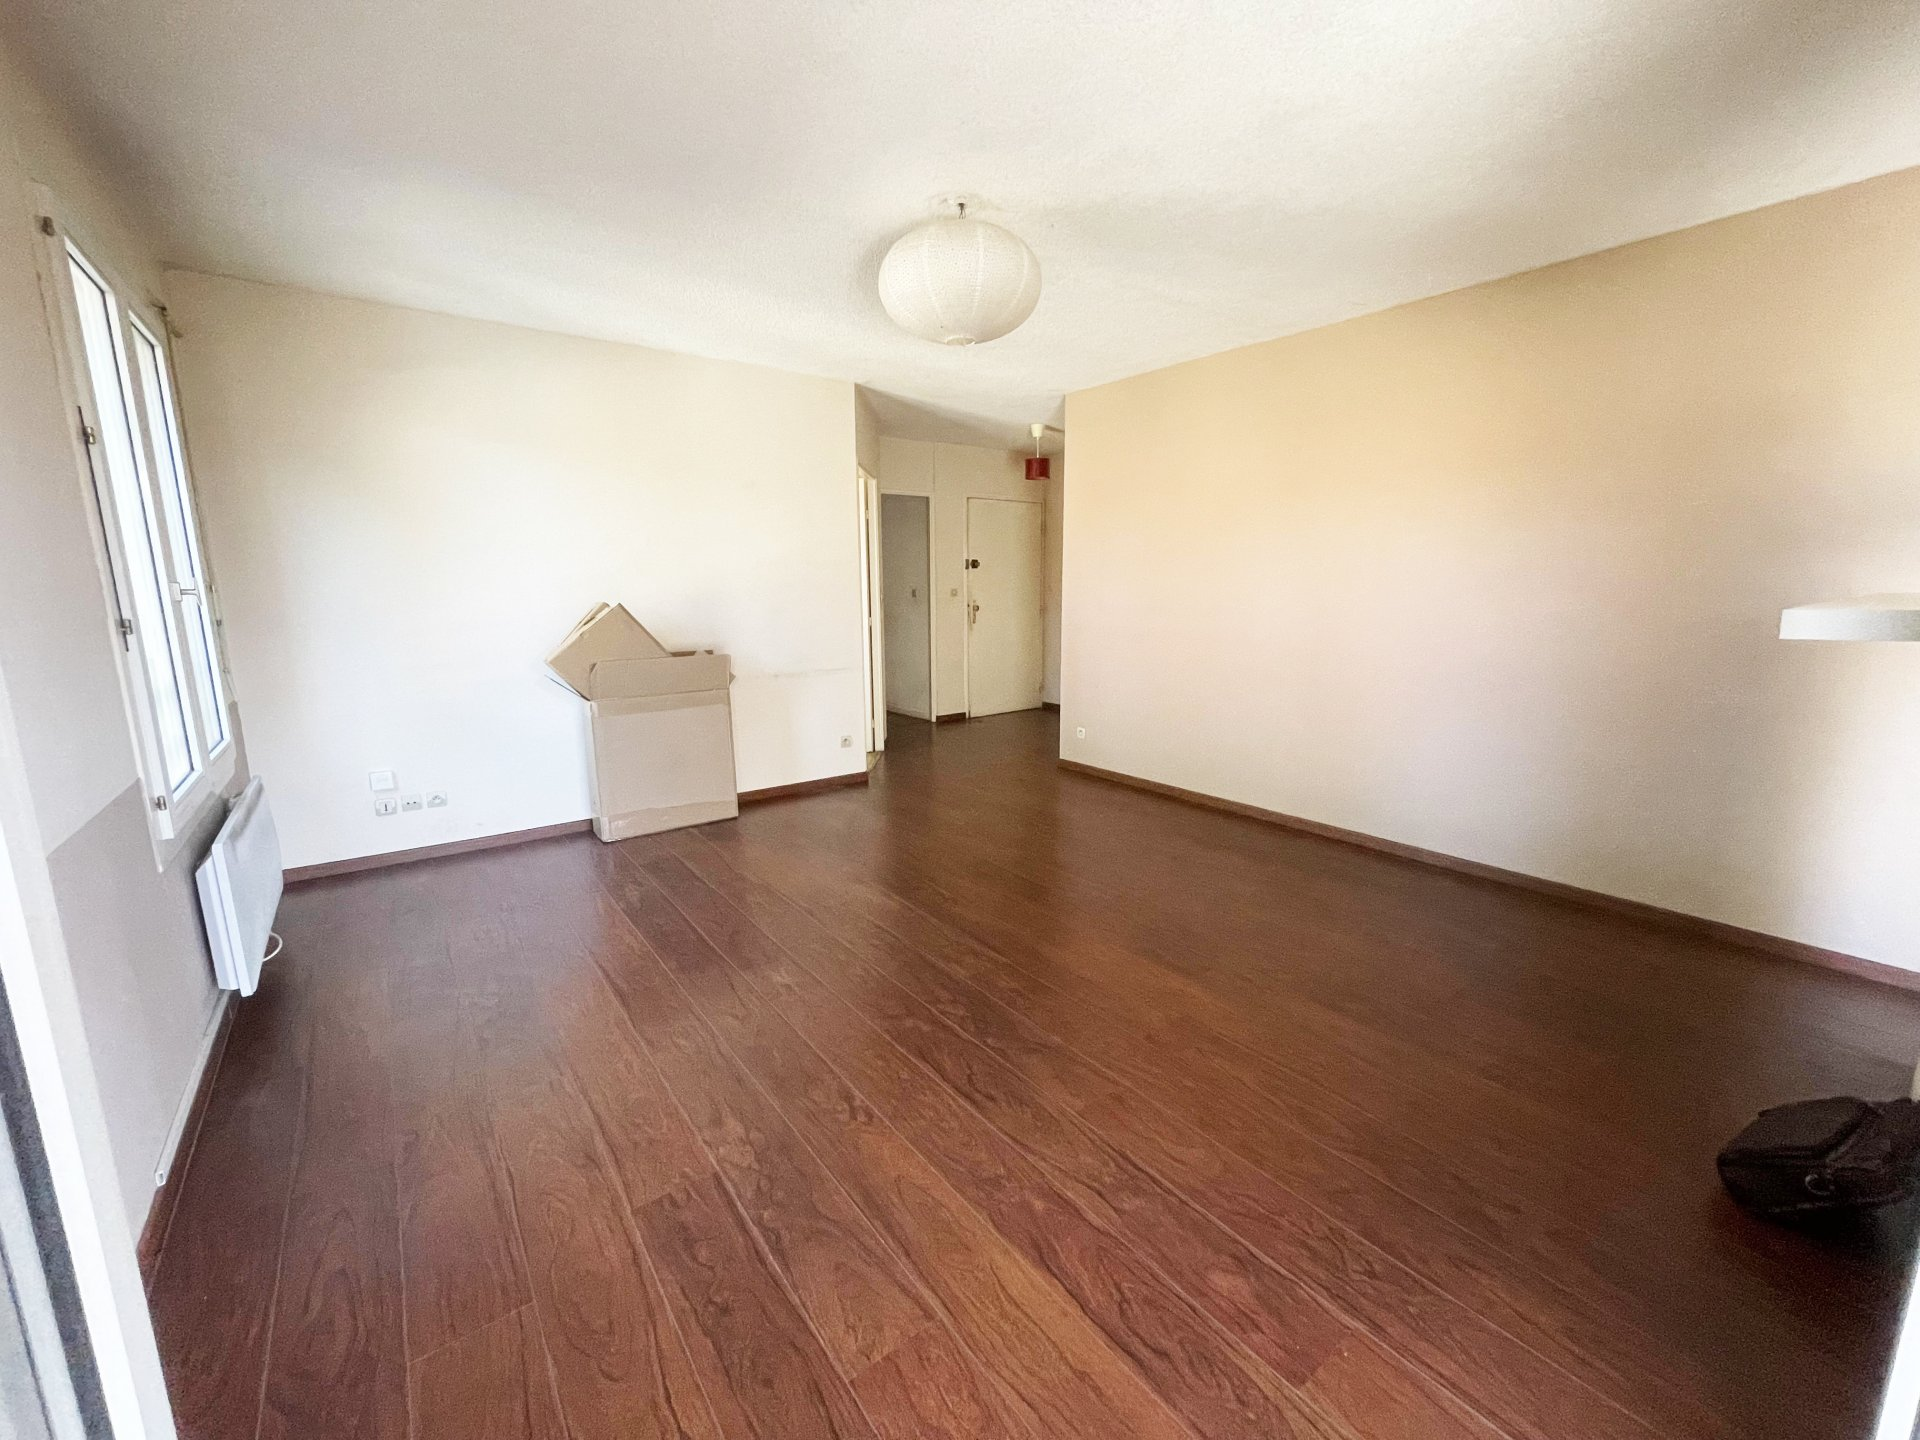 Appartement T2 - 47m² - 31200 TOULOUSE